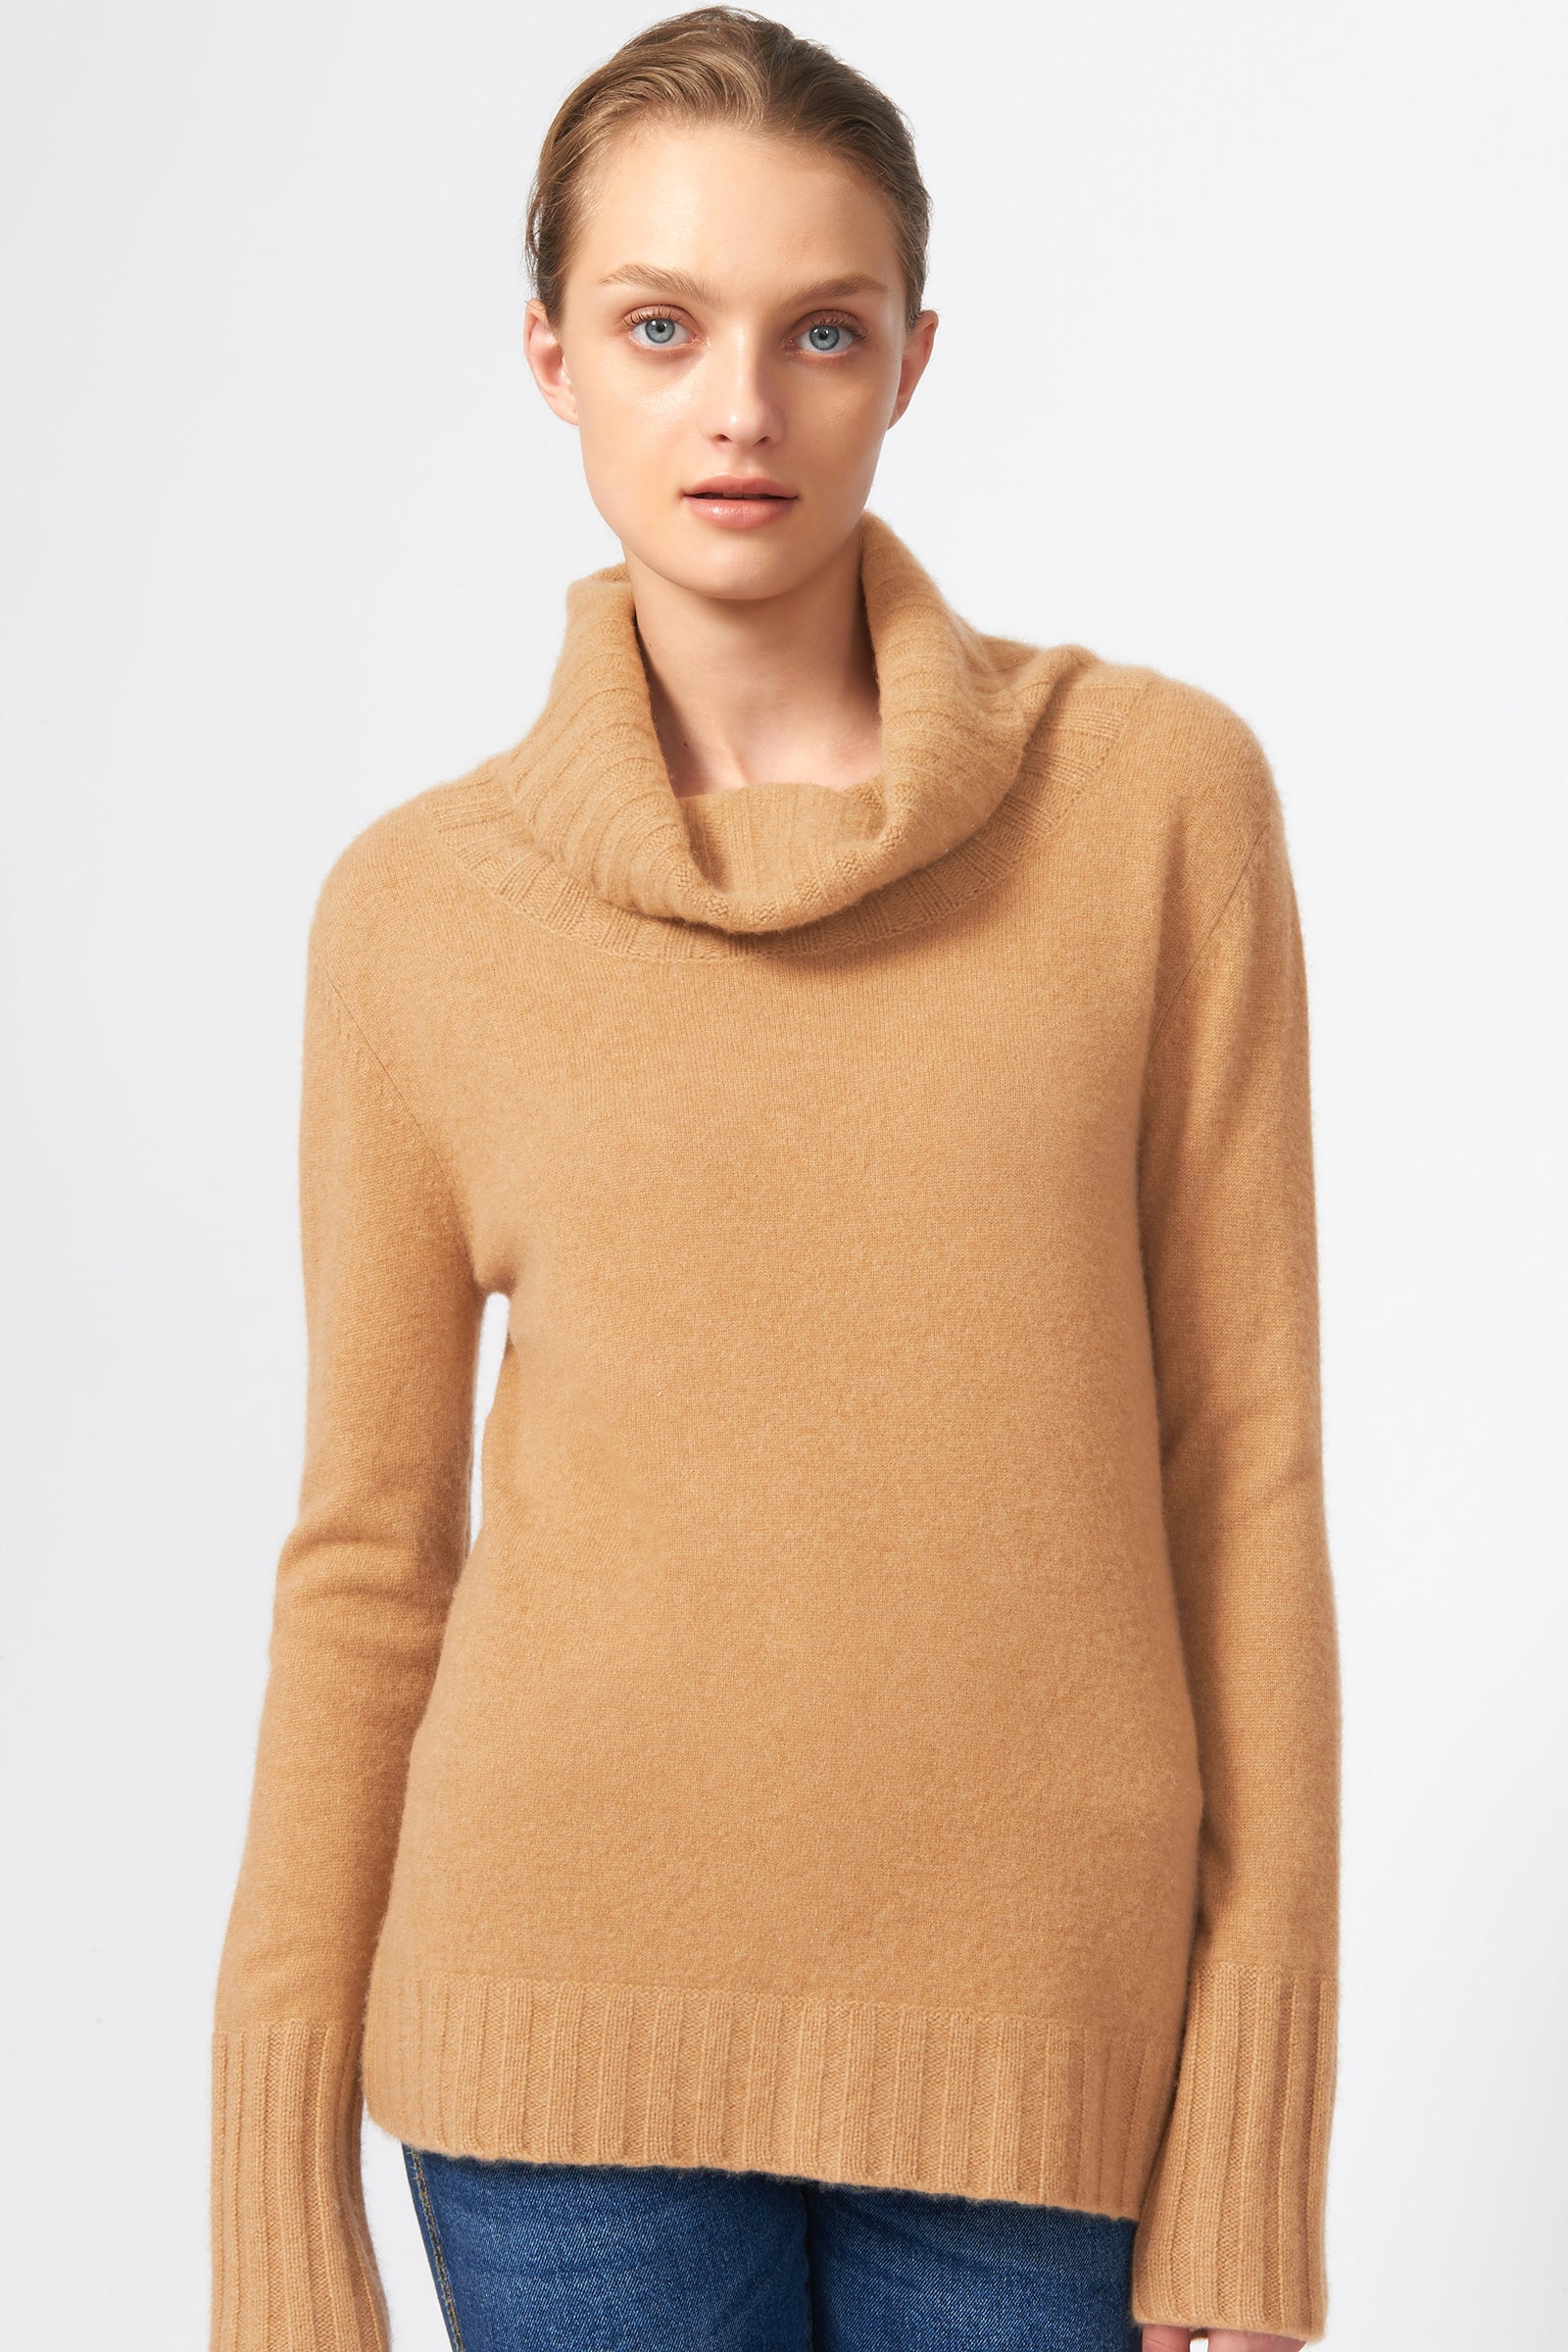 Kal Rieman Cashmere Cowel T-Neck in Camel on Model Front View